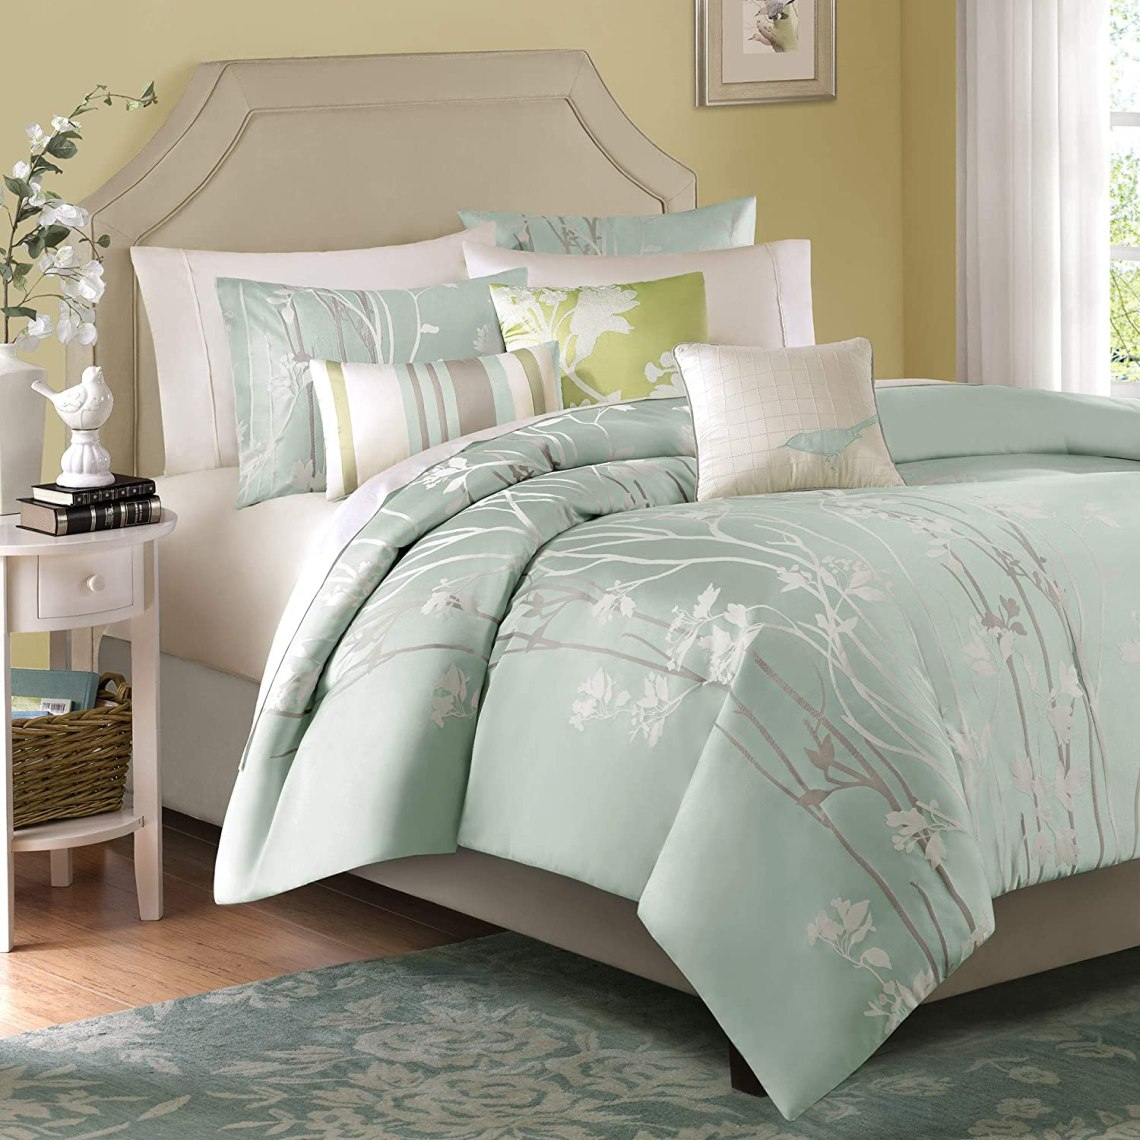 Amazon Com Madison Park Athena Queen Size Bed Comforter Set Bed In A Bag Seafoam Green Floral Jacquard 7 Pieces Bedding Sets Ultra Soft Microfiber Bedroom Comforters Mp10 001 Home Kitchen